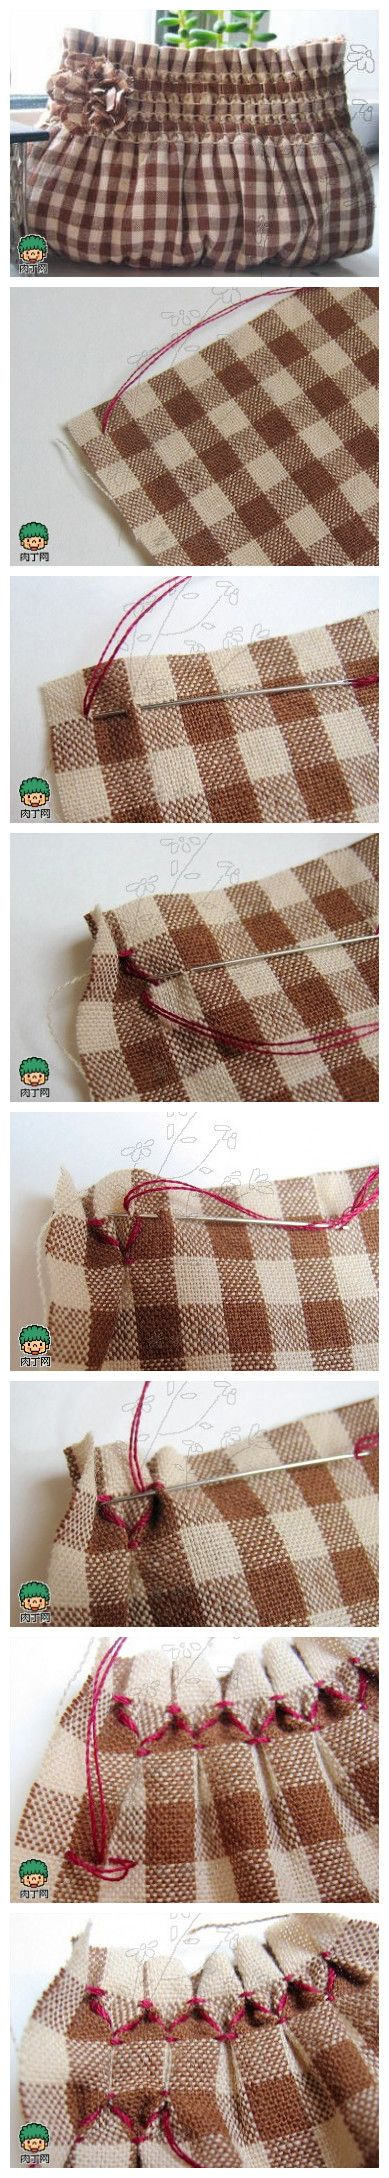 Pic tutorial pinched ruffle border for a cute bag check it out!